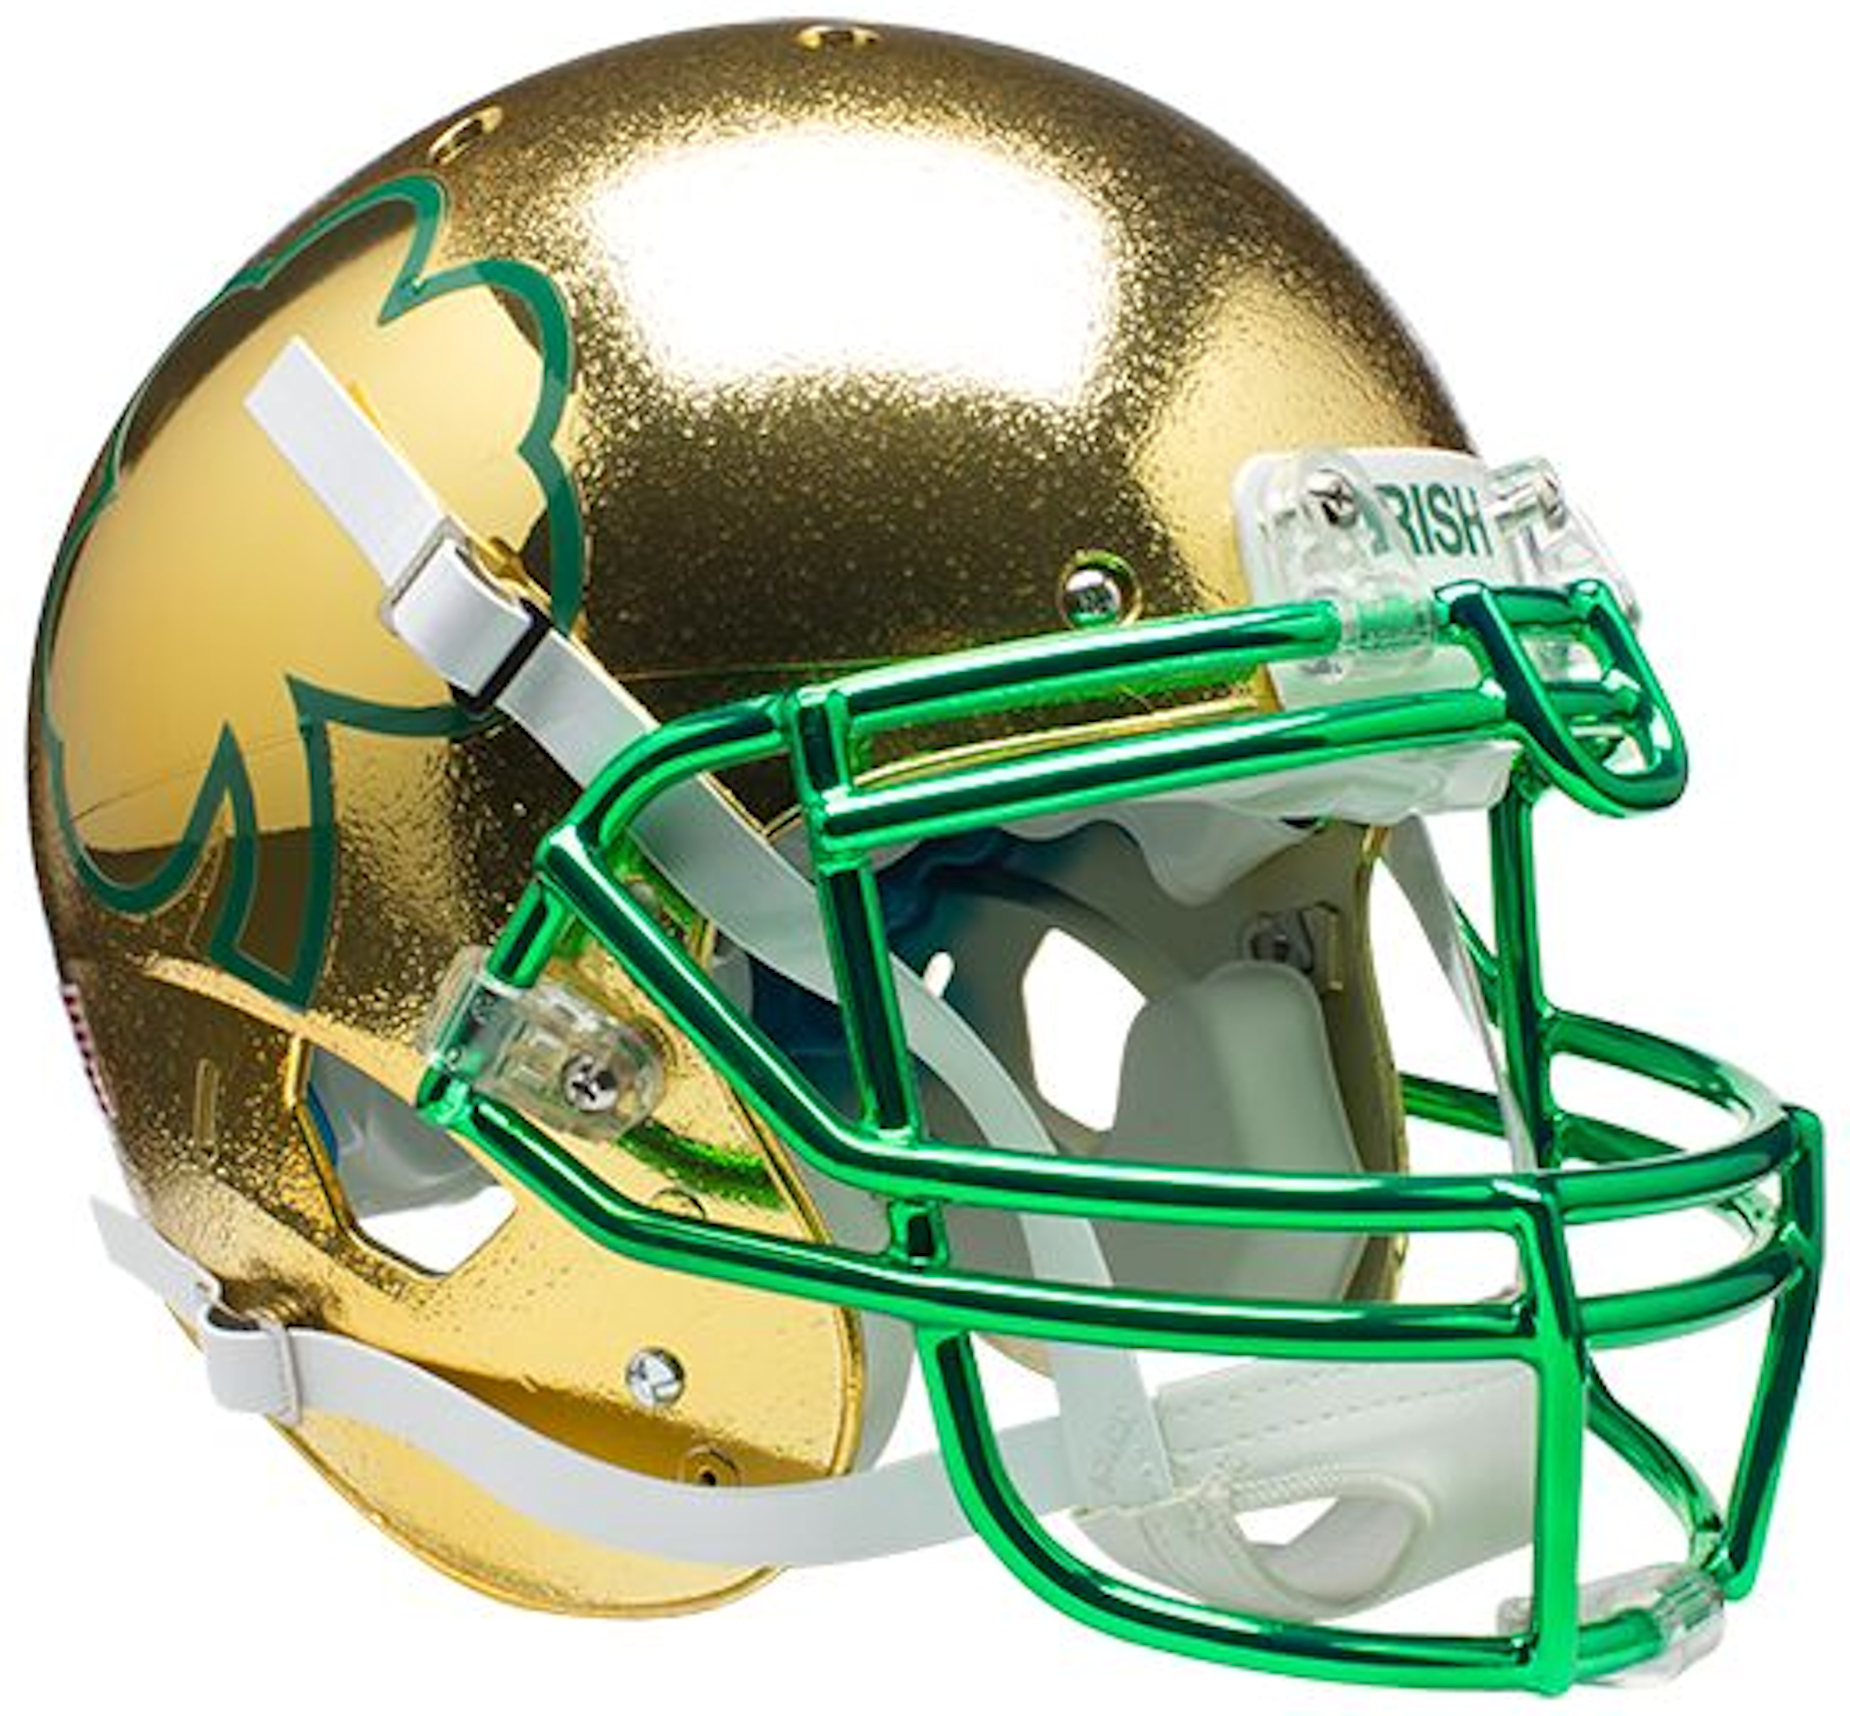 Notre Dame Fighting Irish Authentic College XP Football Helmet Schutt <B>Textured with Shamrock</B>